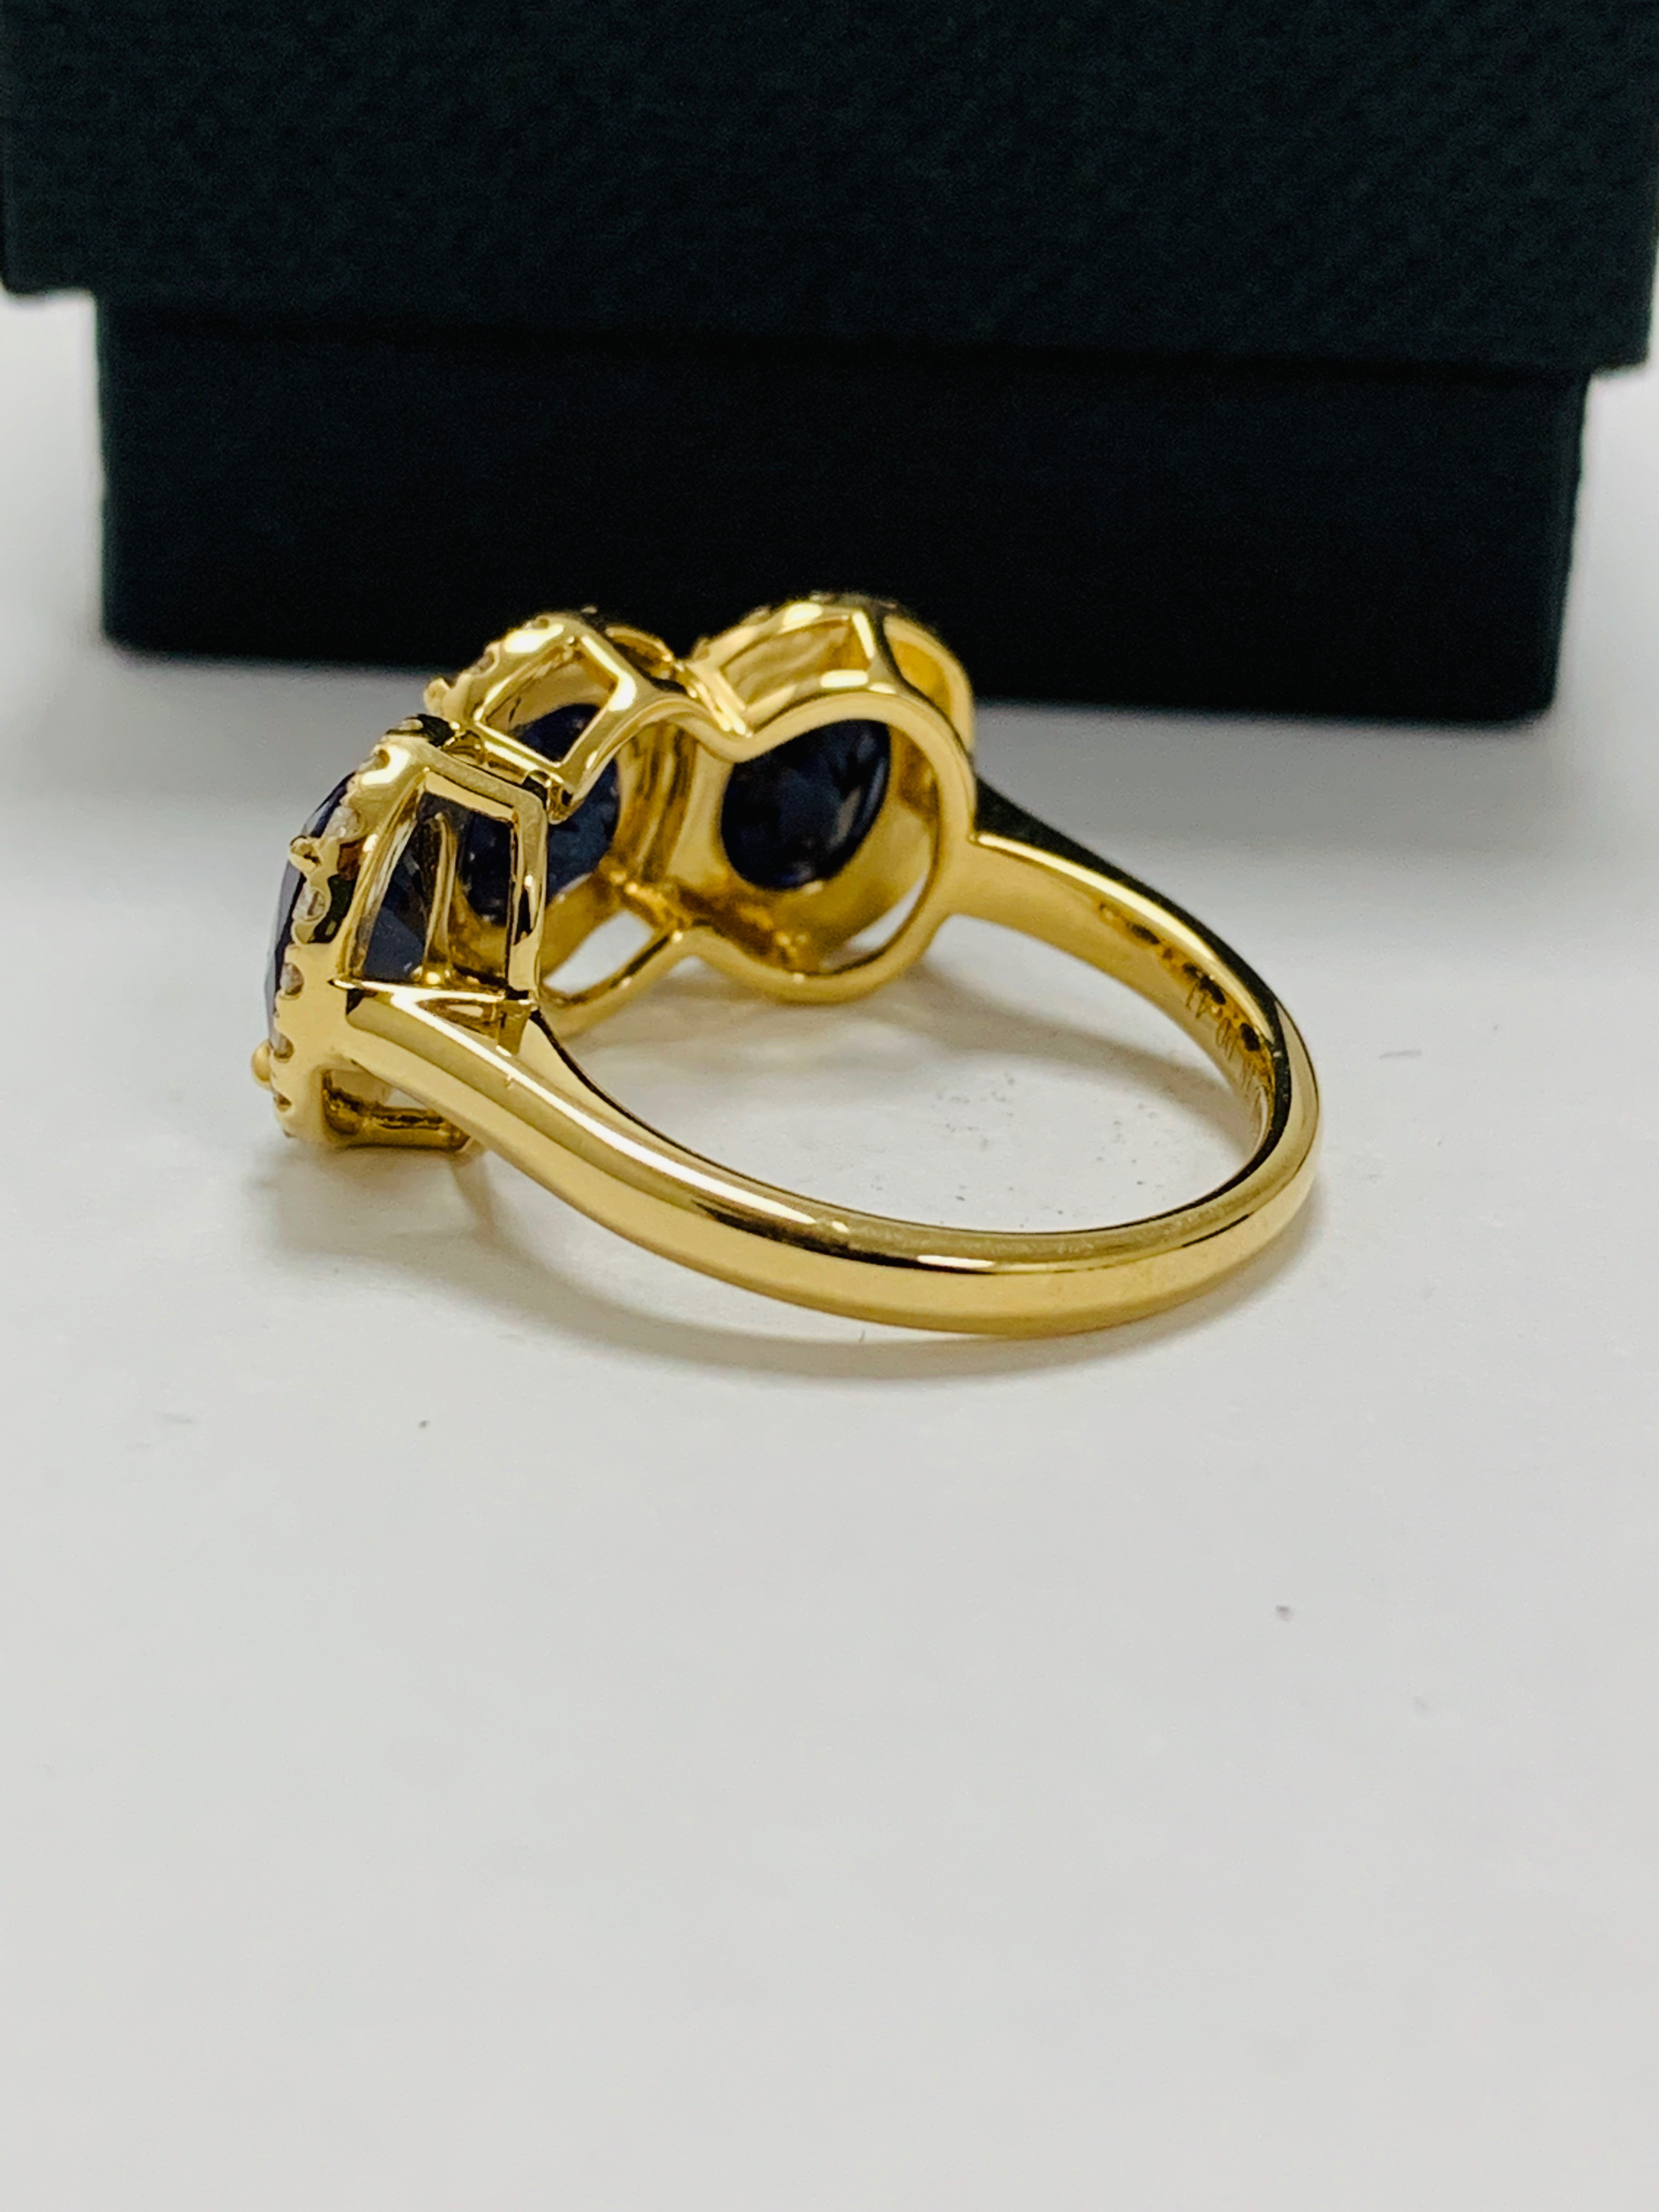 18ct yellow gold sapphire and diamond ring - Image 5 of 12